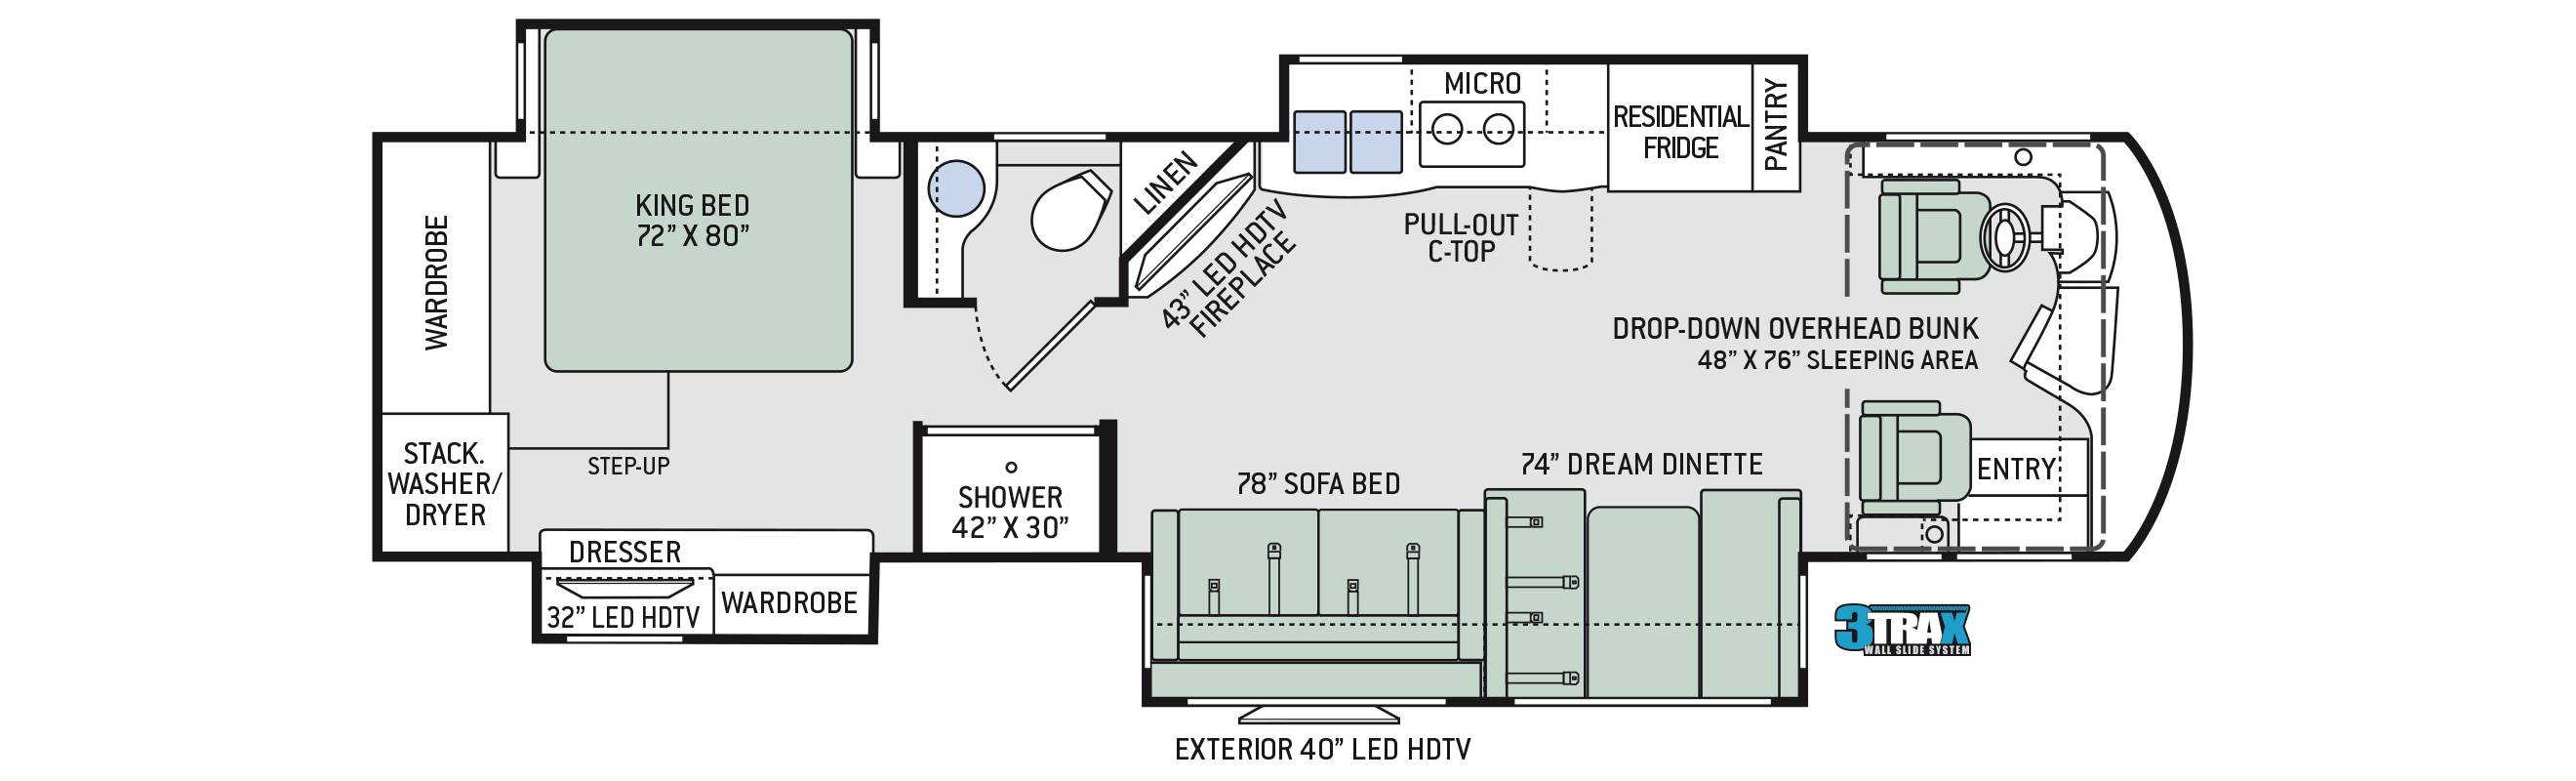 2018 Thor Aria 3601 Floor Plan